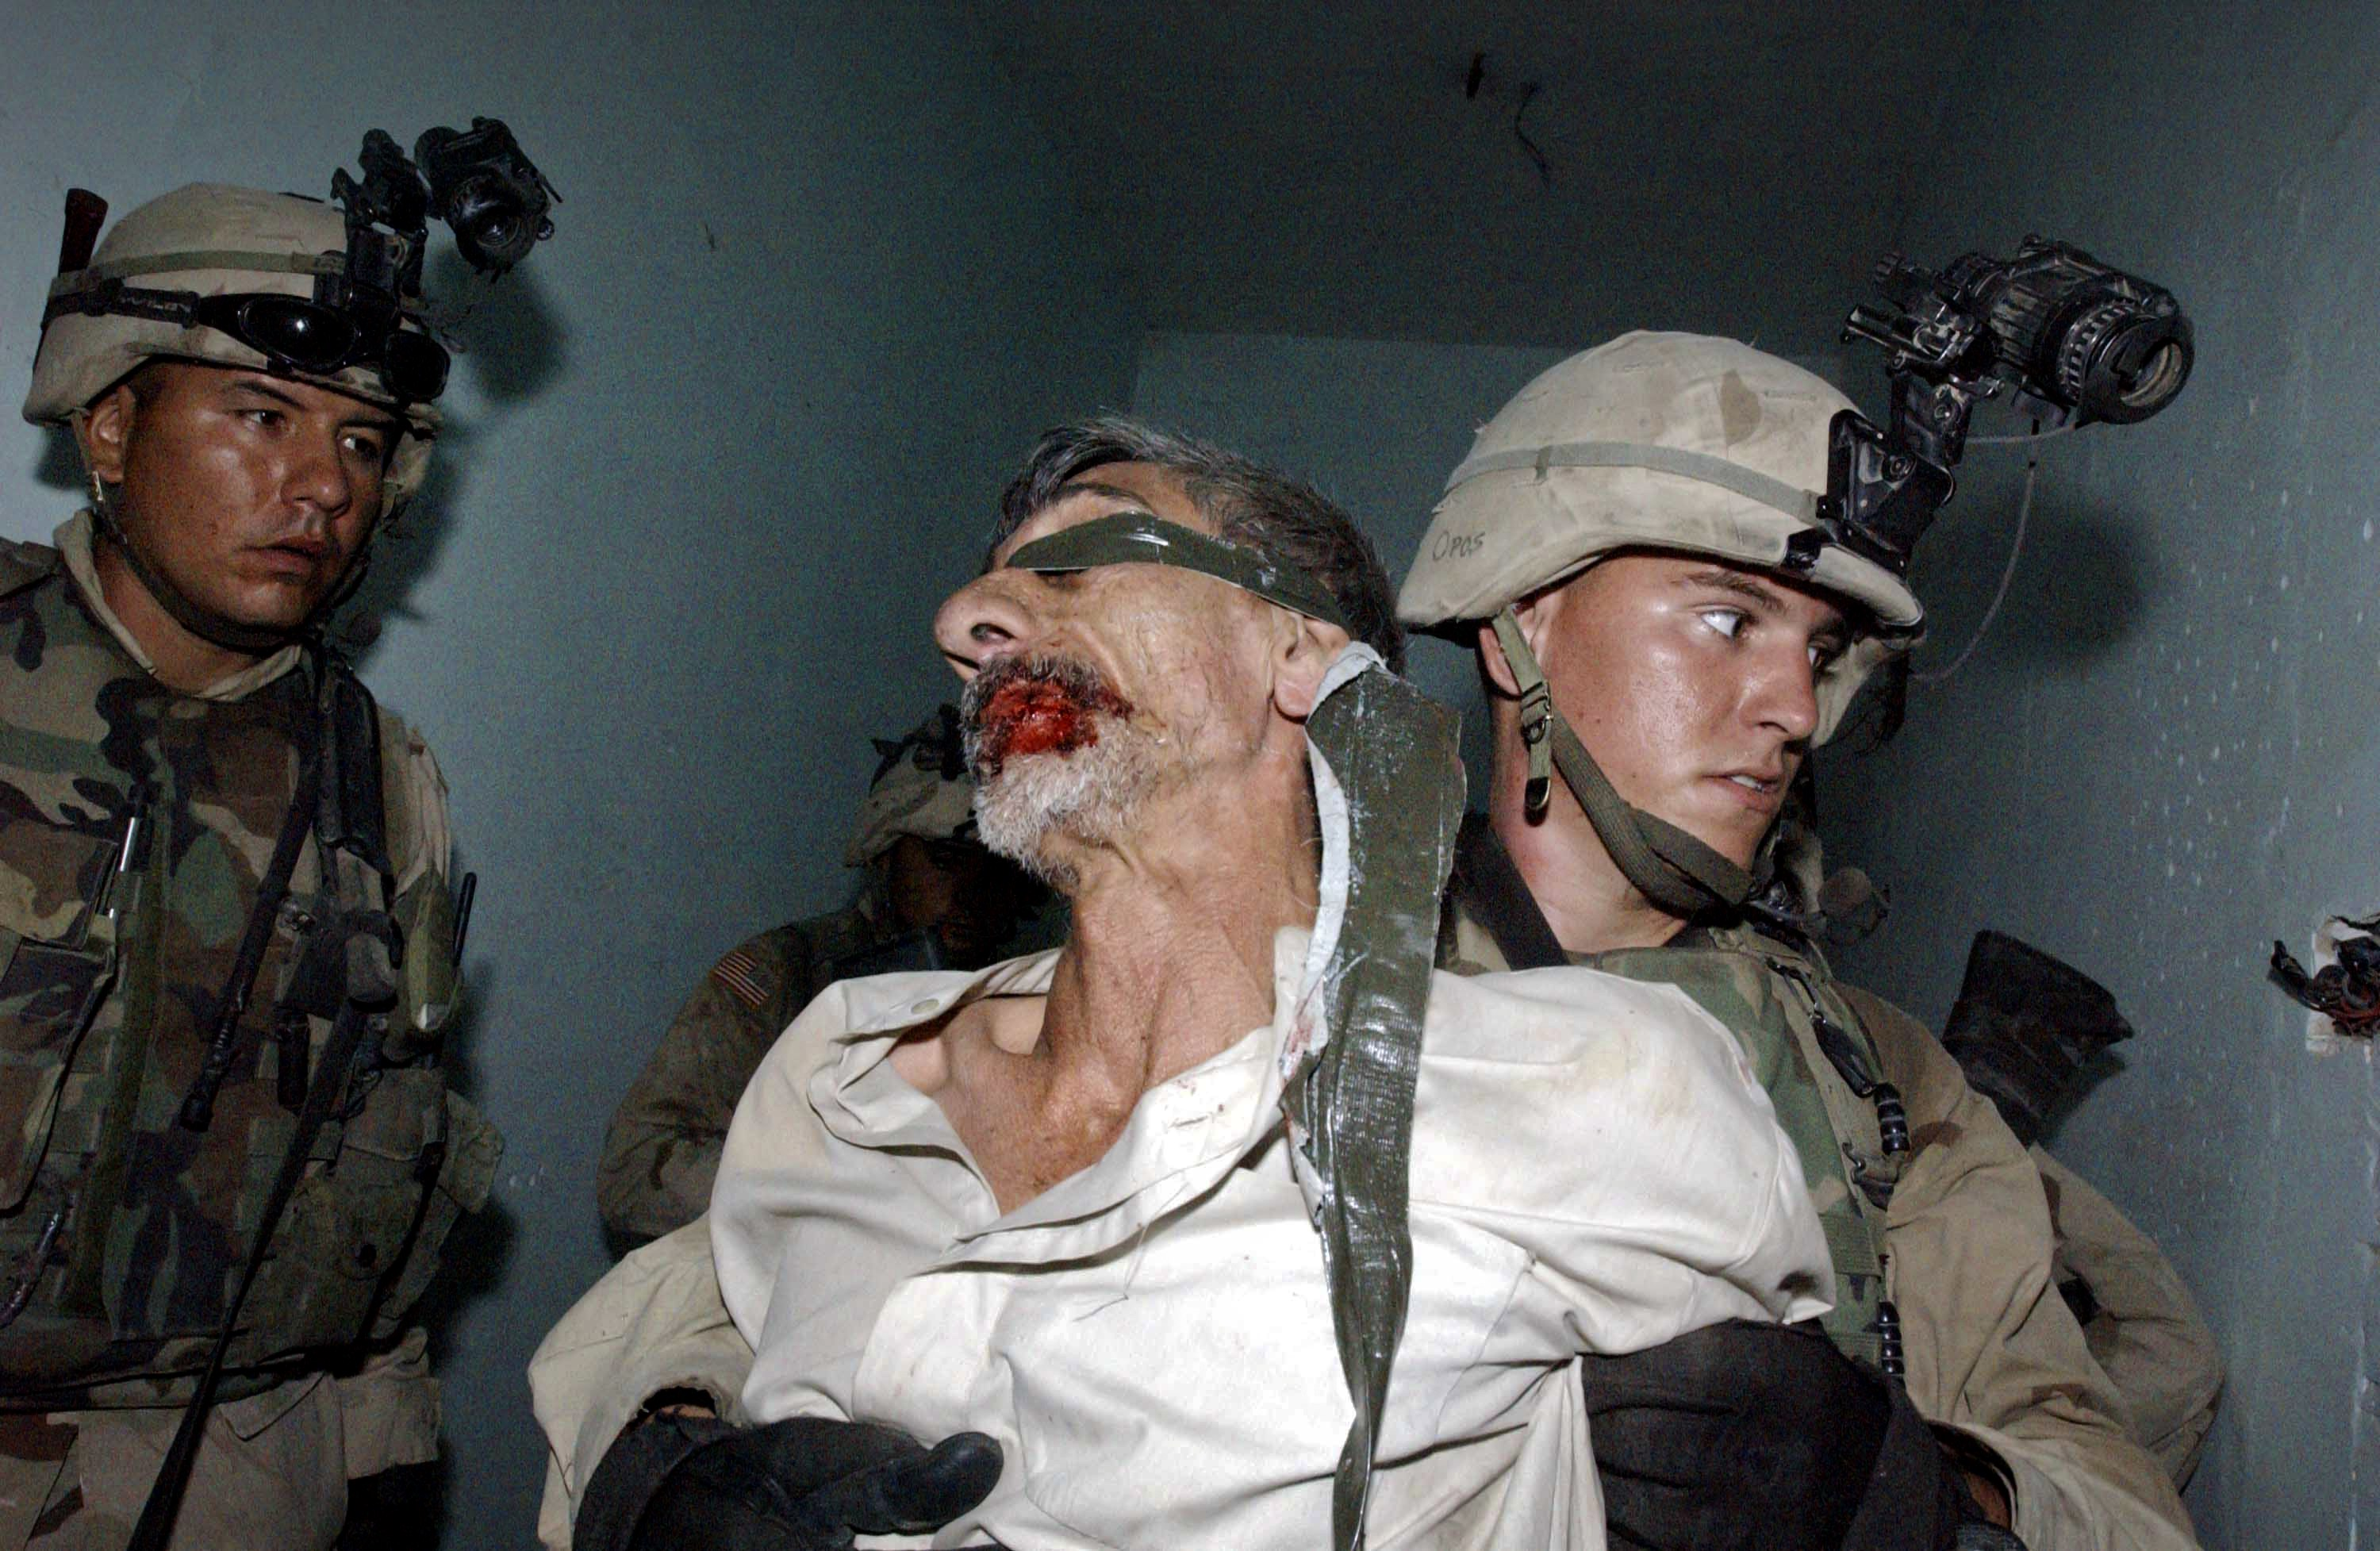 Withdrawal of U.S. troops from Iraq